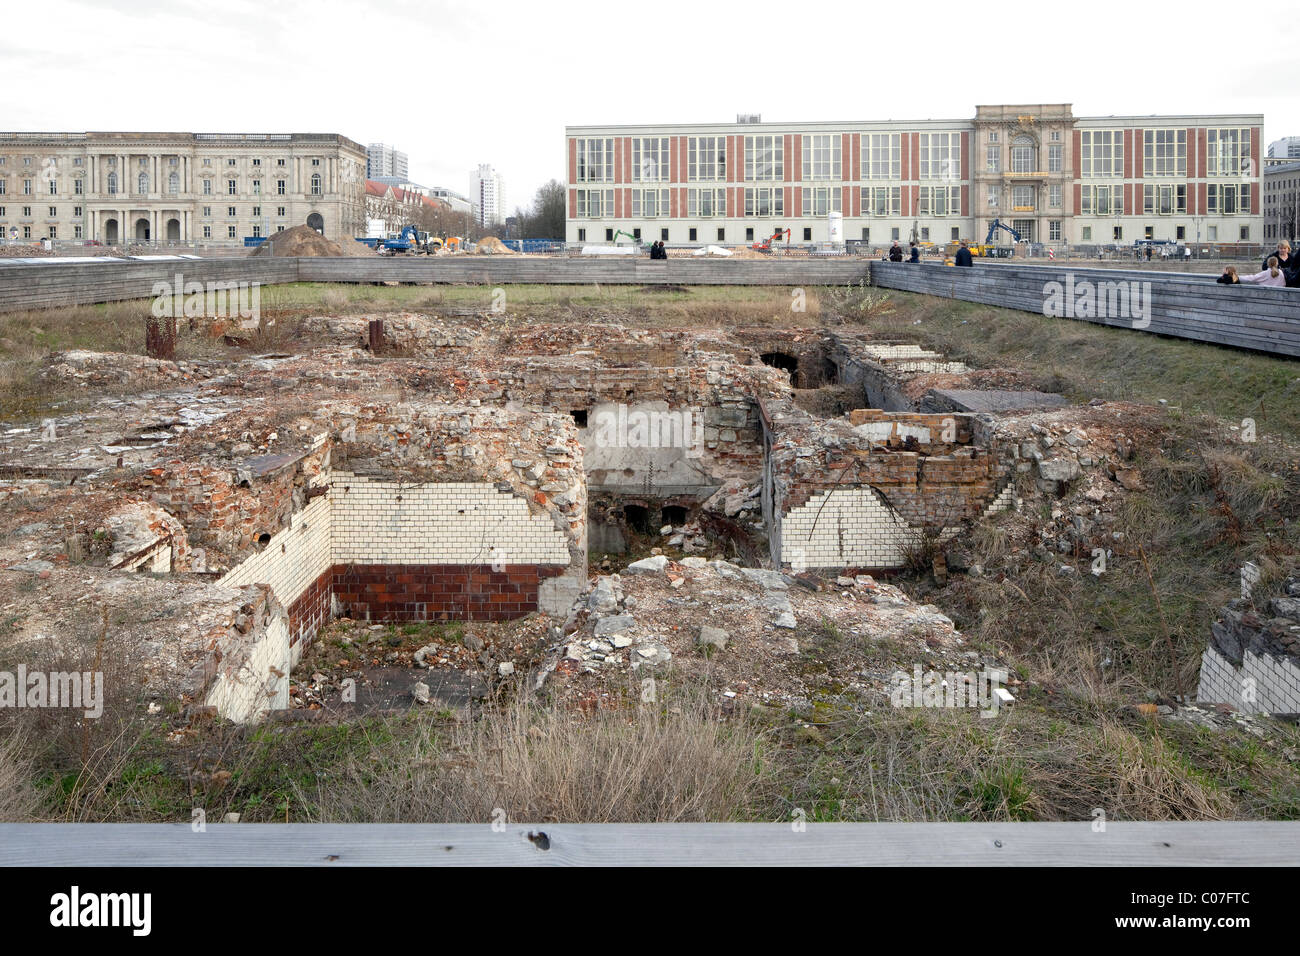 Schlossplatz square, temporary use as a park, archaeological excavations, Mitte district, Berlin, Germany, Europe - Stock Image